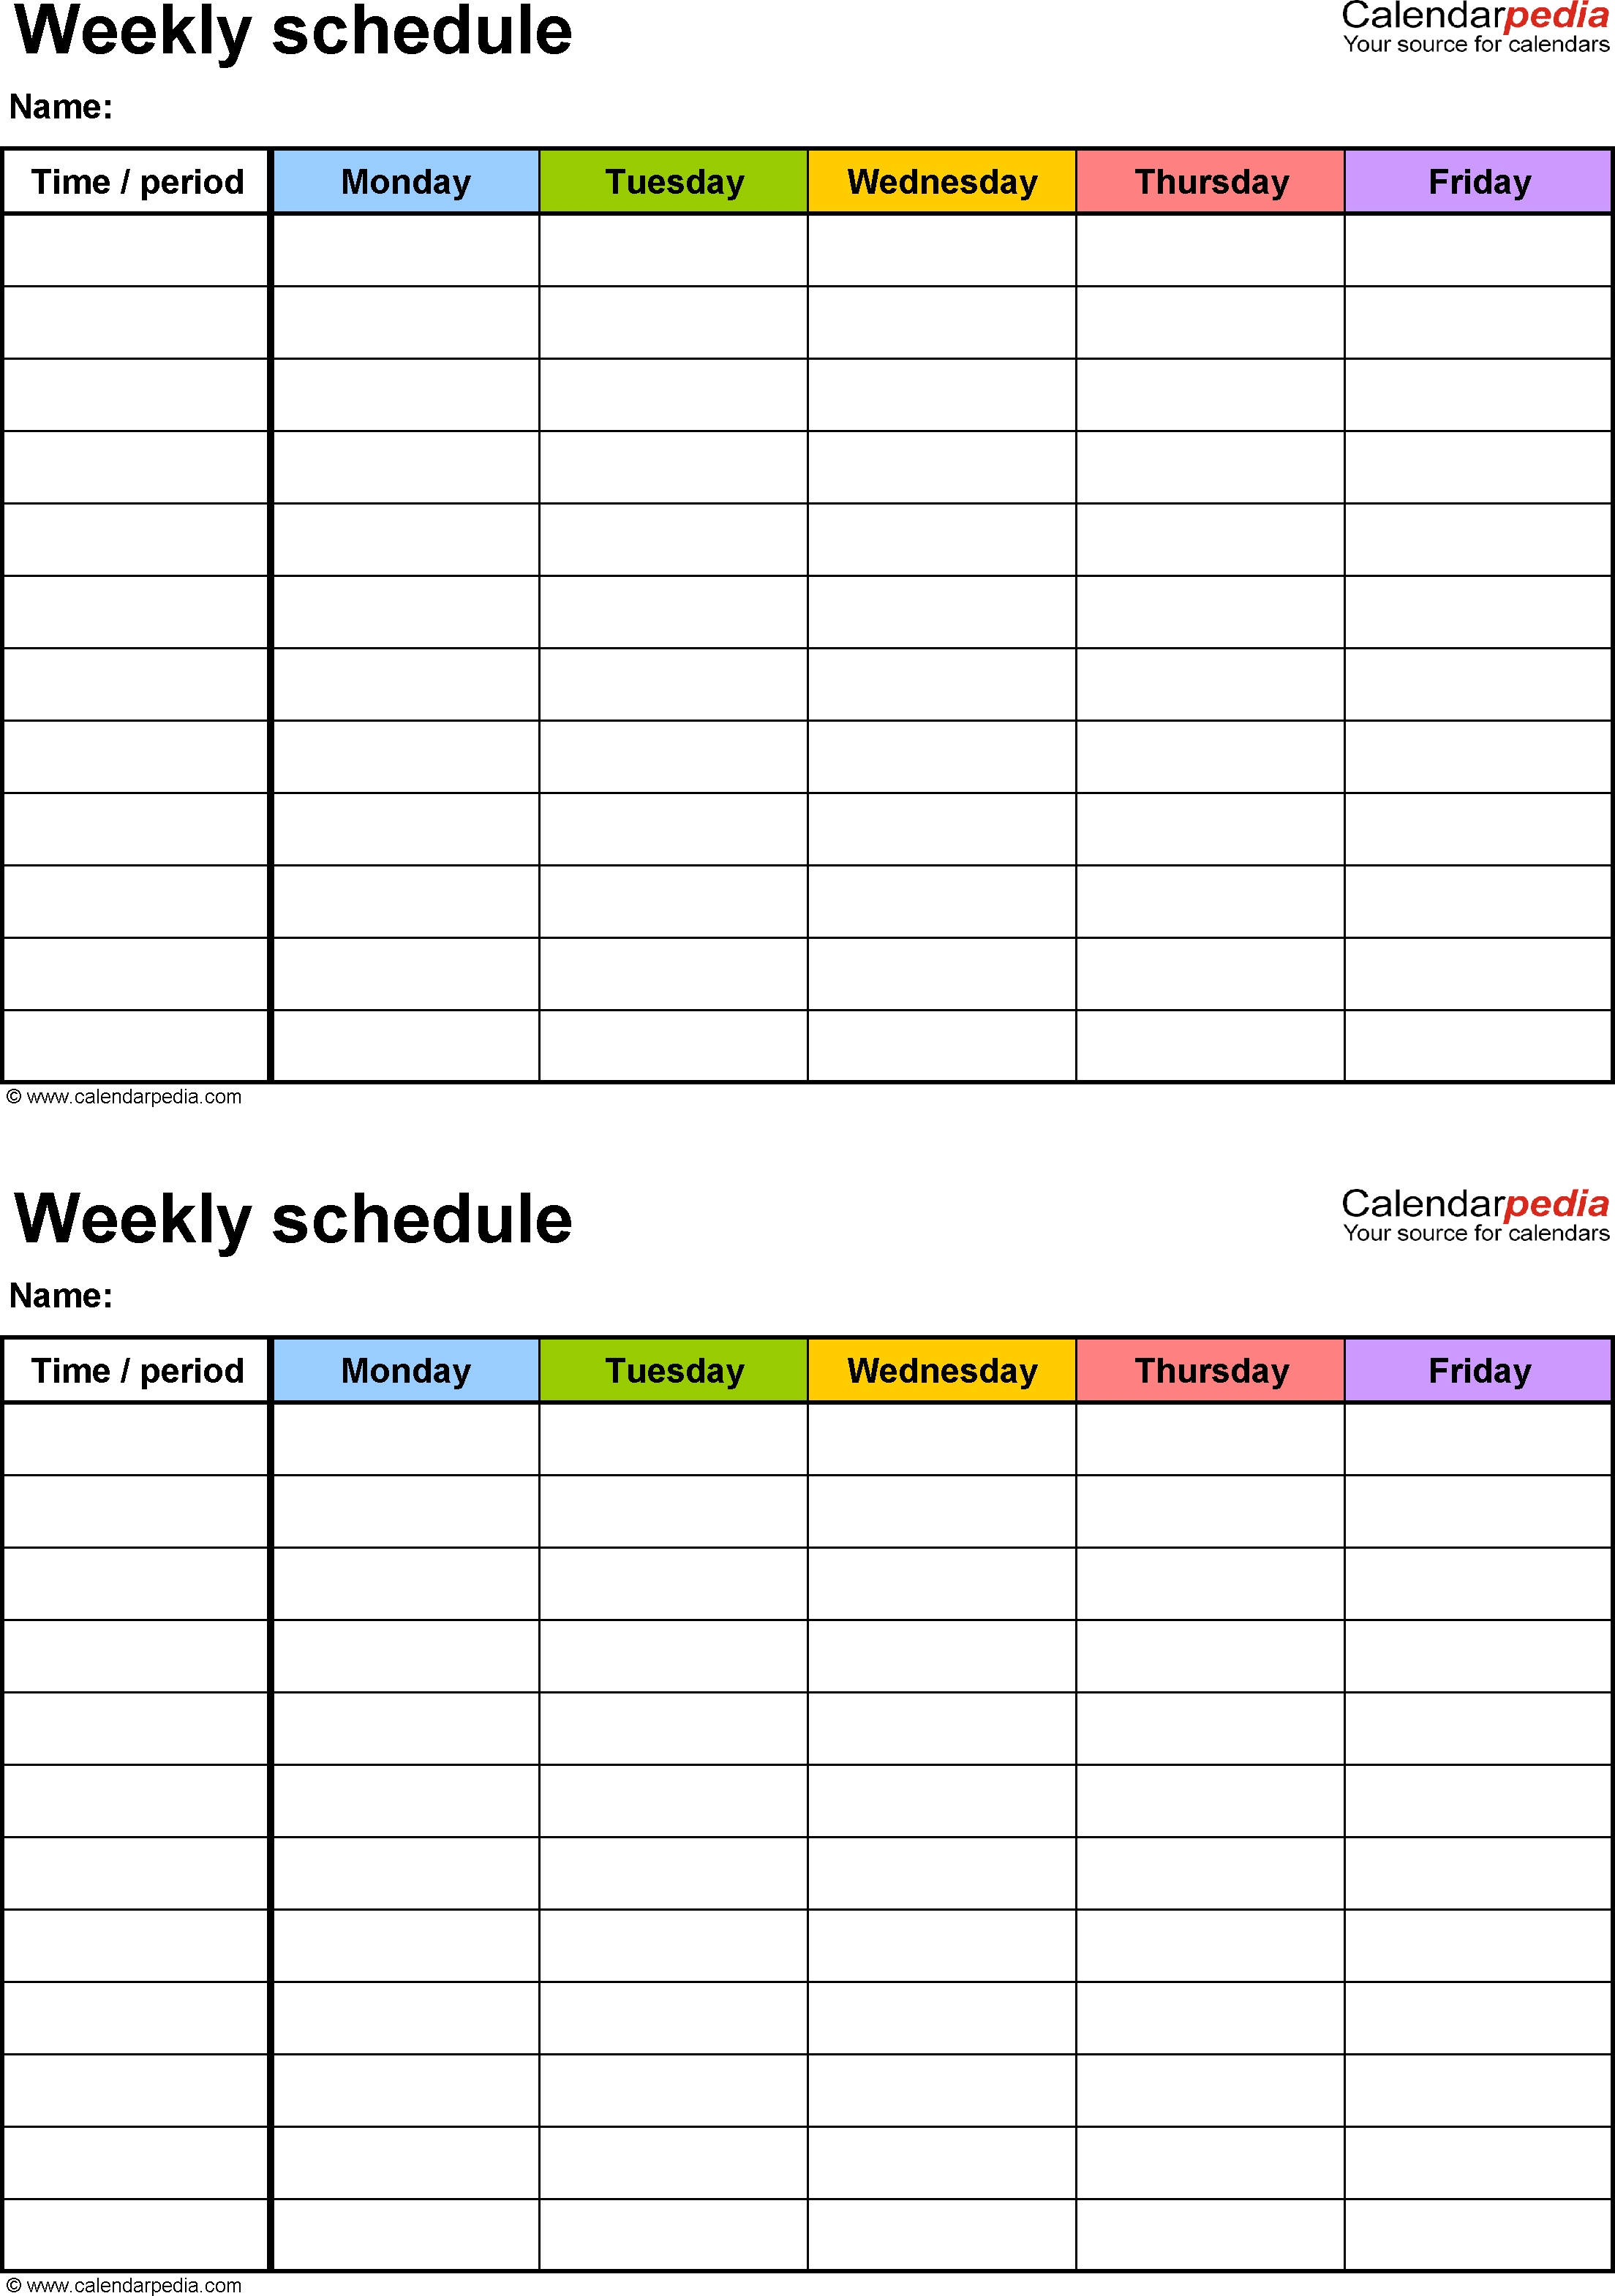 Free Weekly Schedule Templates For Word - 18 Templates 8 Day Calendar Template